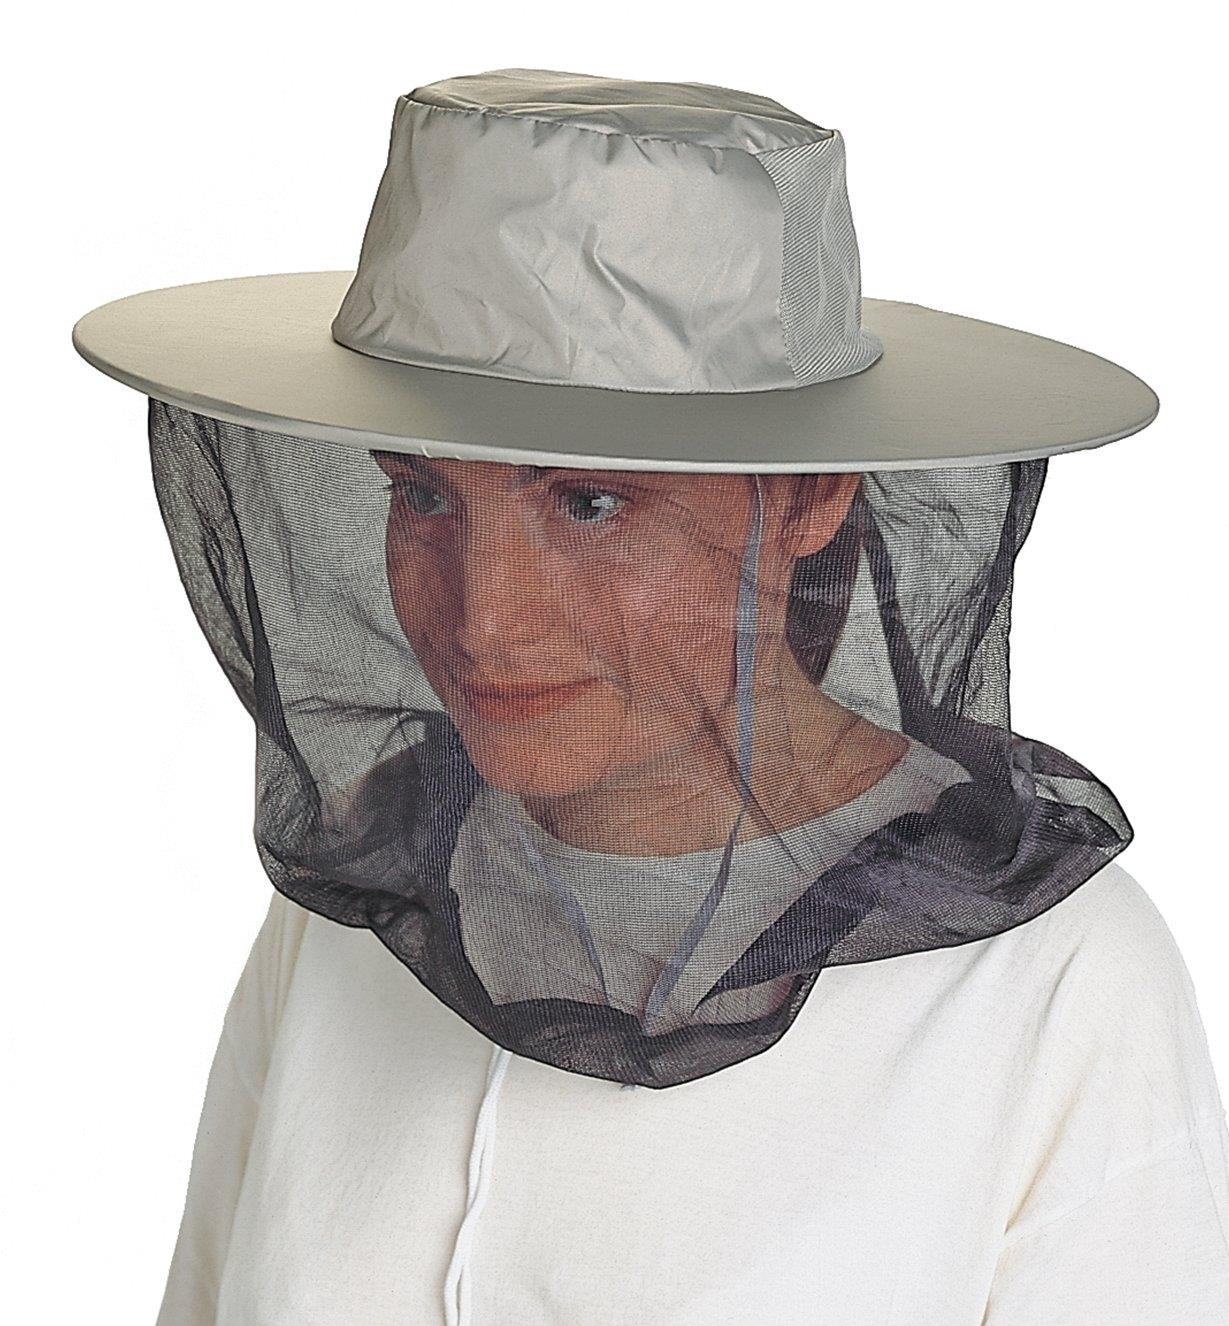 A woman wearing the Pocket Hat with the mosquito head net